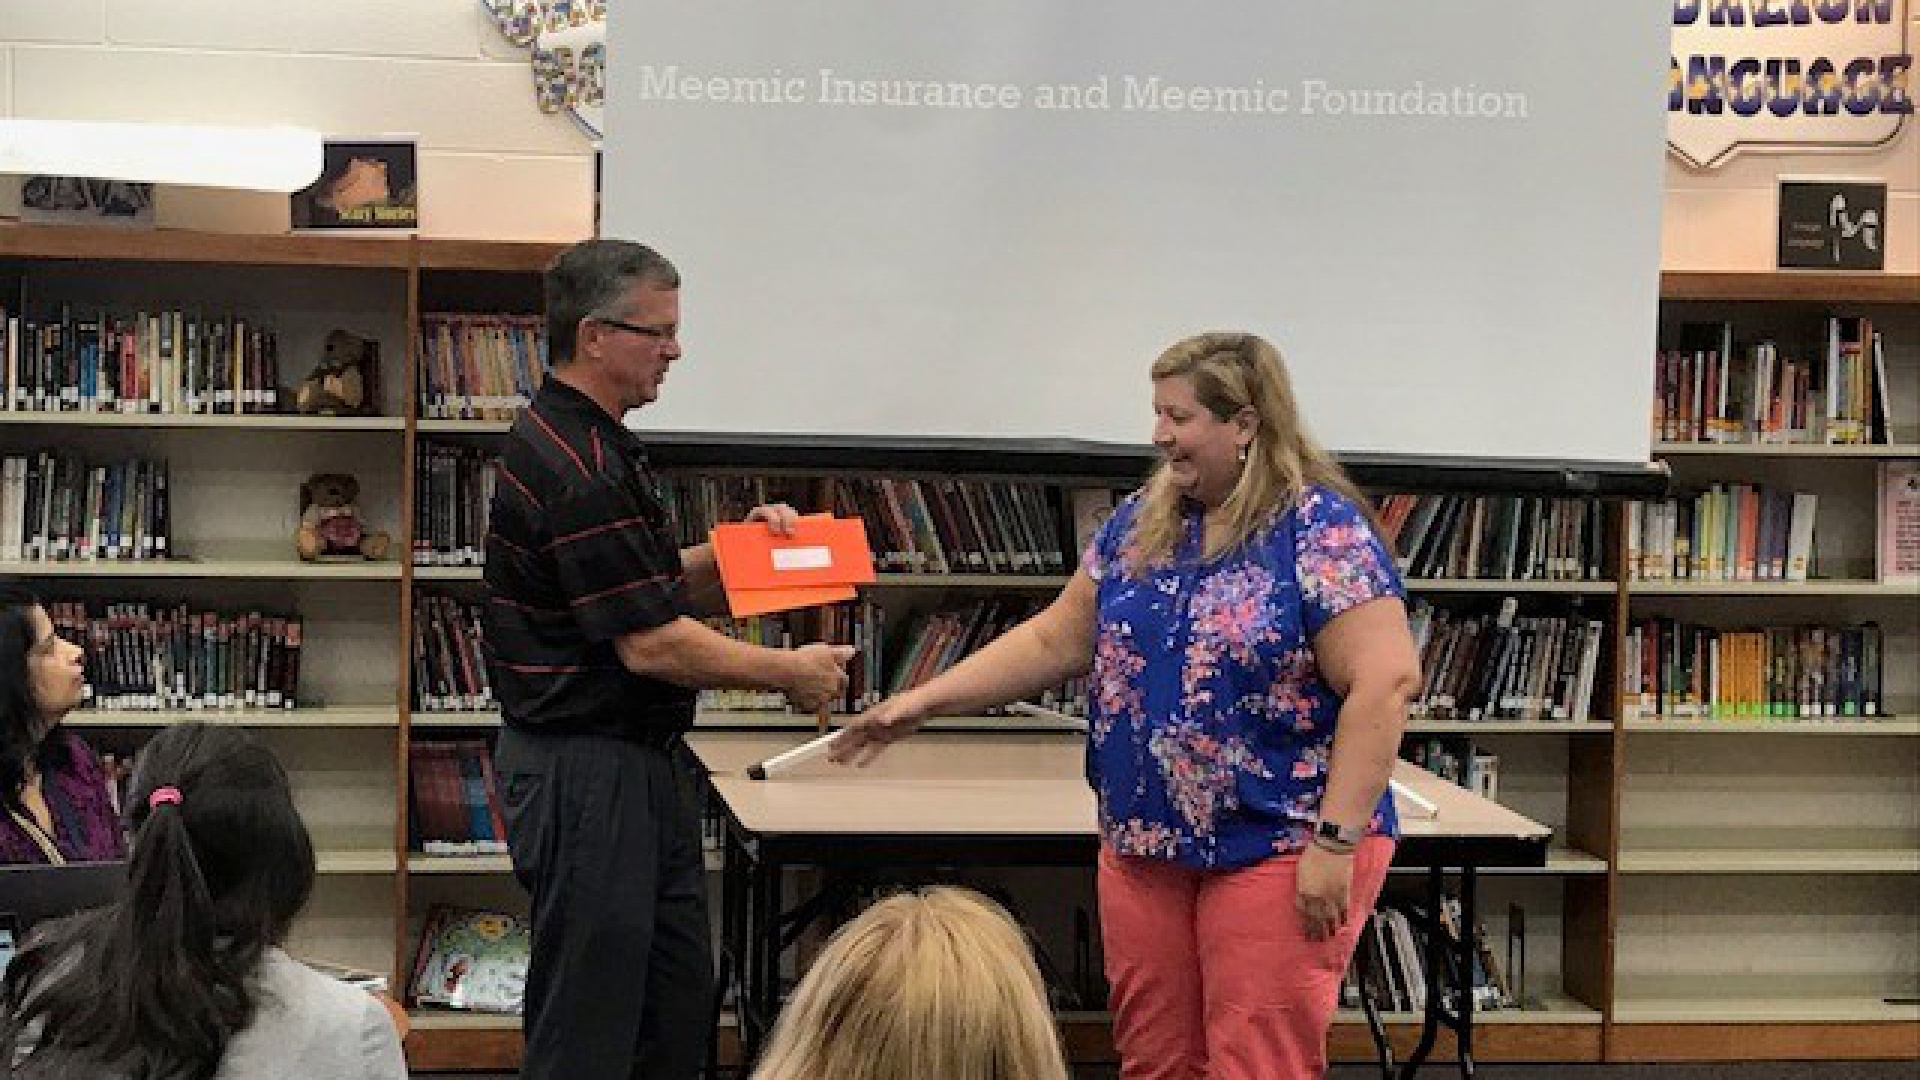 Ms. Neugebauer receiving Meemic Foundation Grant